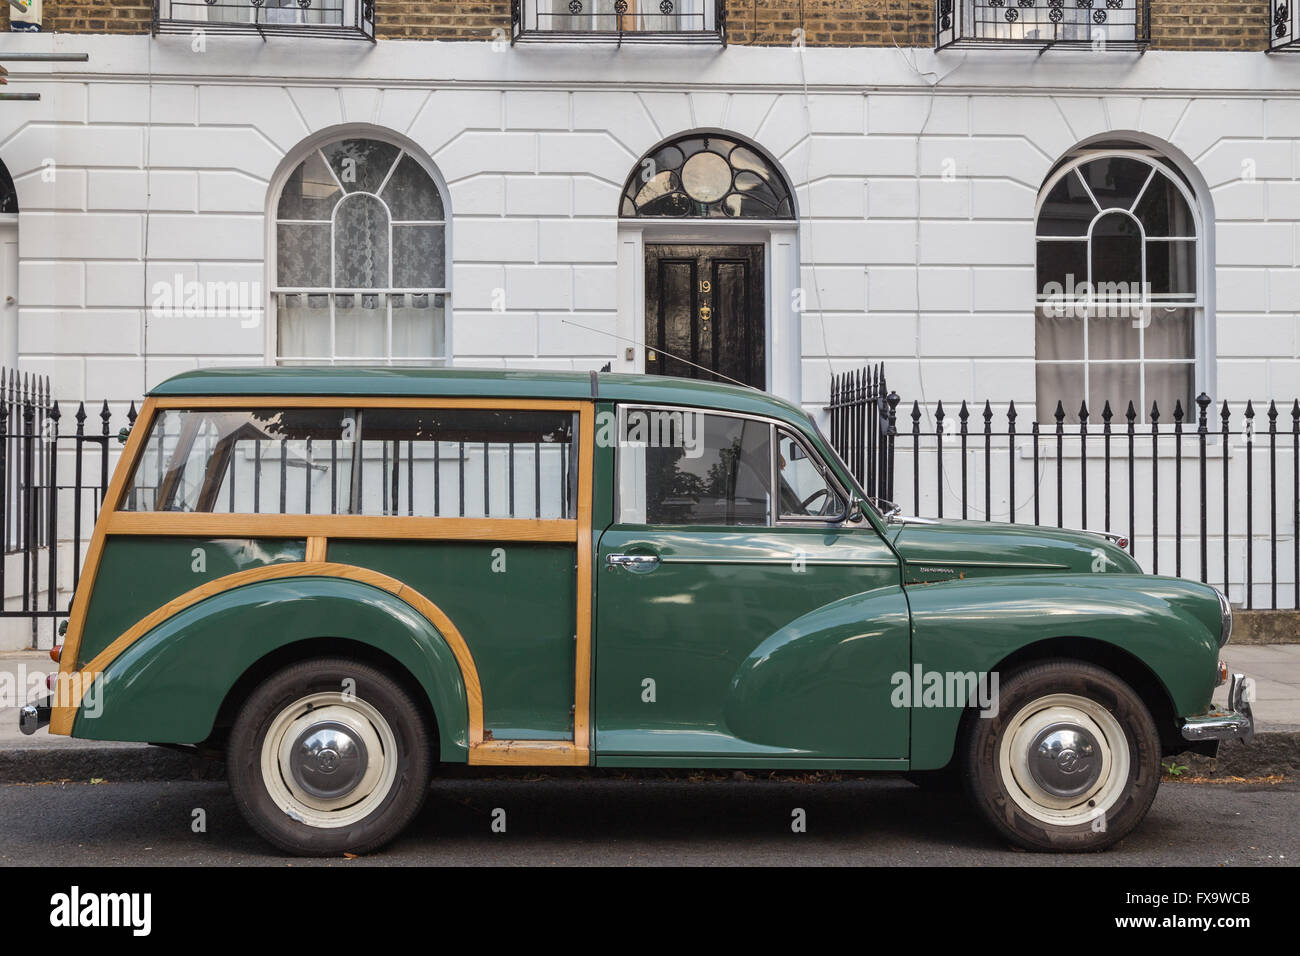 vintage Morris Traveller car outside a Georgian terrace in Islington, London N1 - Stock Image